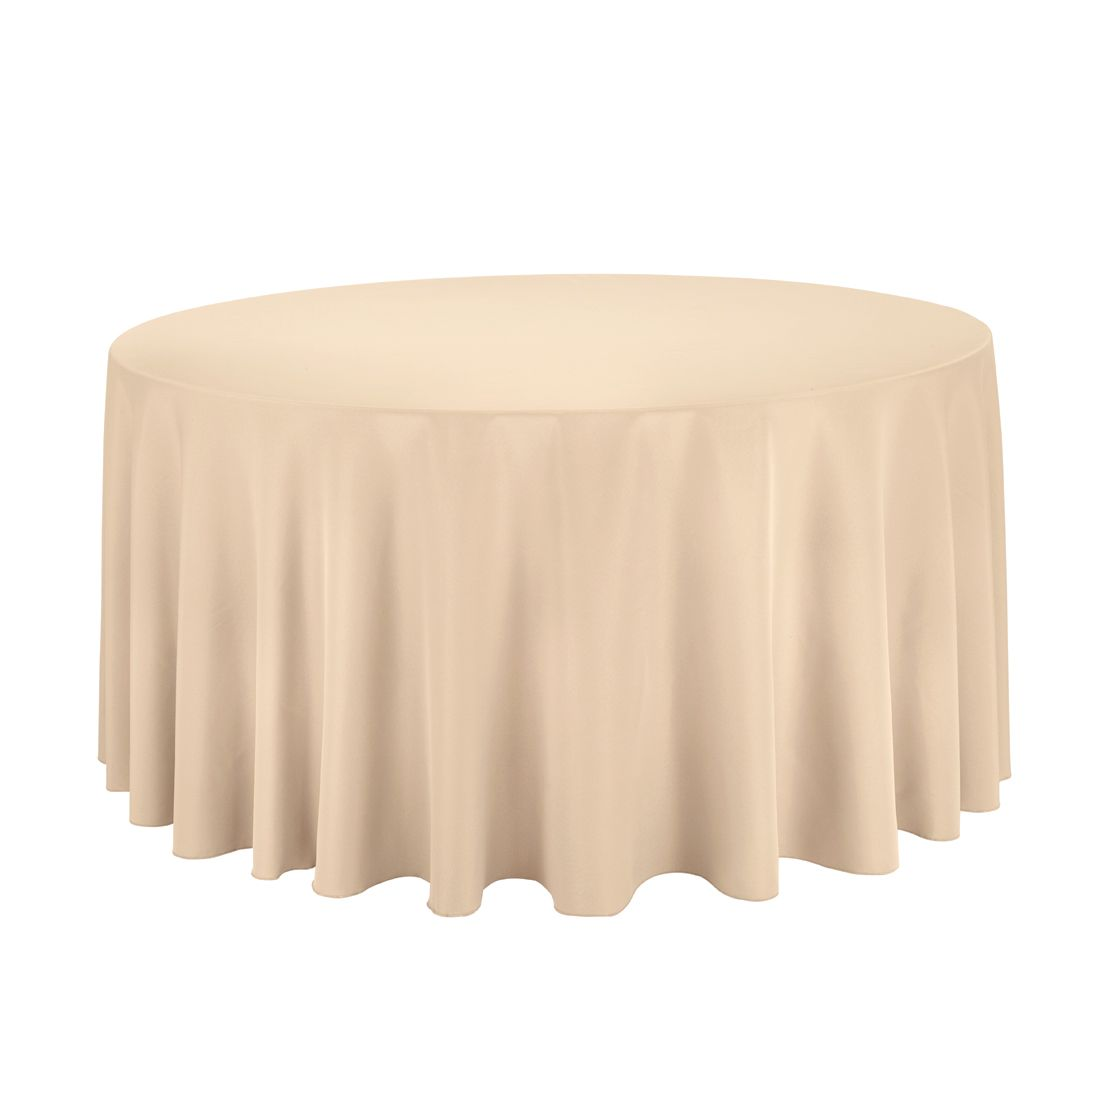 Round Polyester Tablecloths For Weddings And Events. Why Is Poly The Go To Table  Linen Fabric For Events? No Other Cloth Offers The Same Beat U0027em Up ...